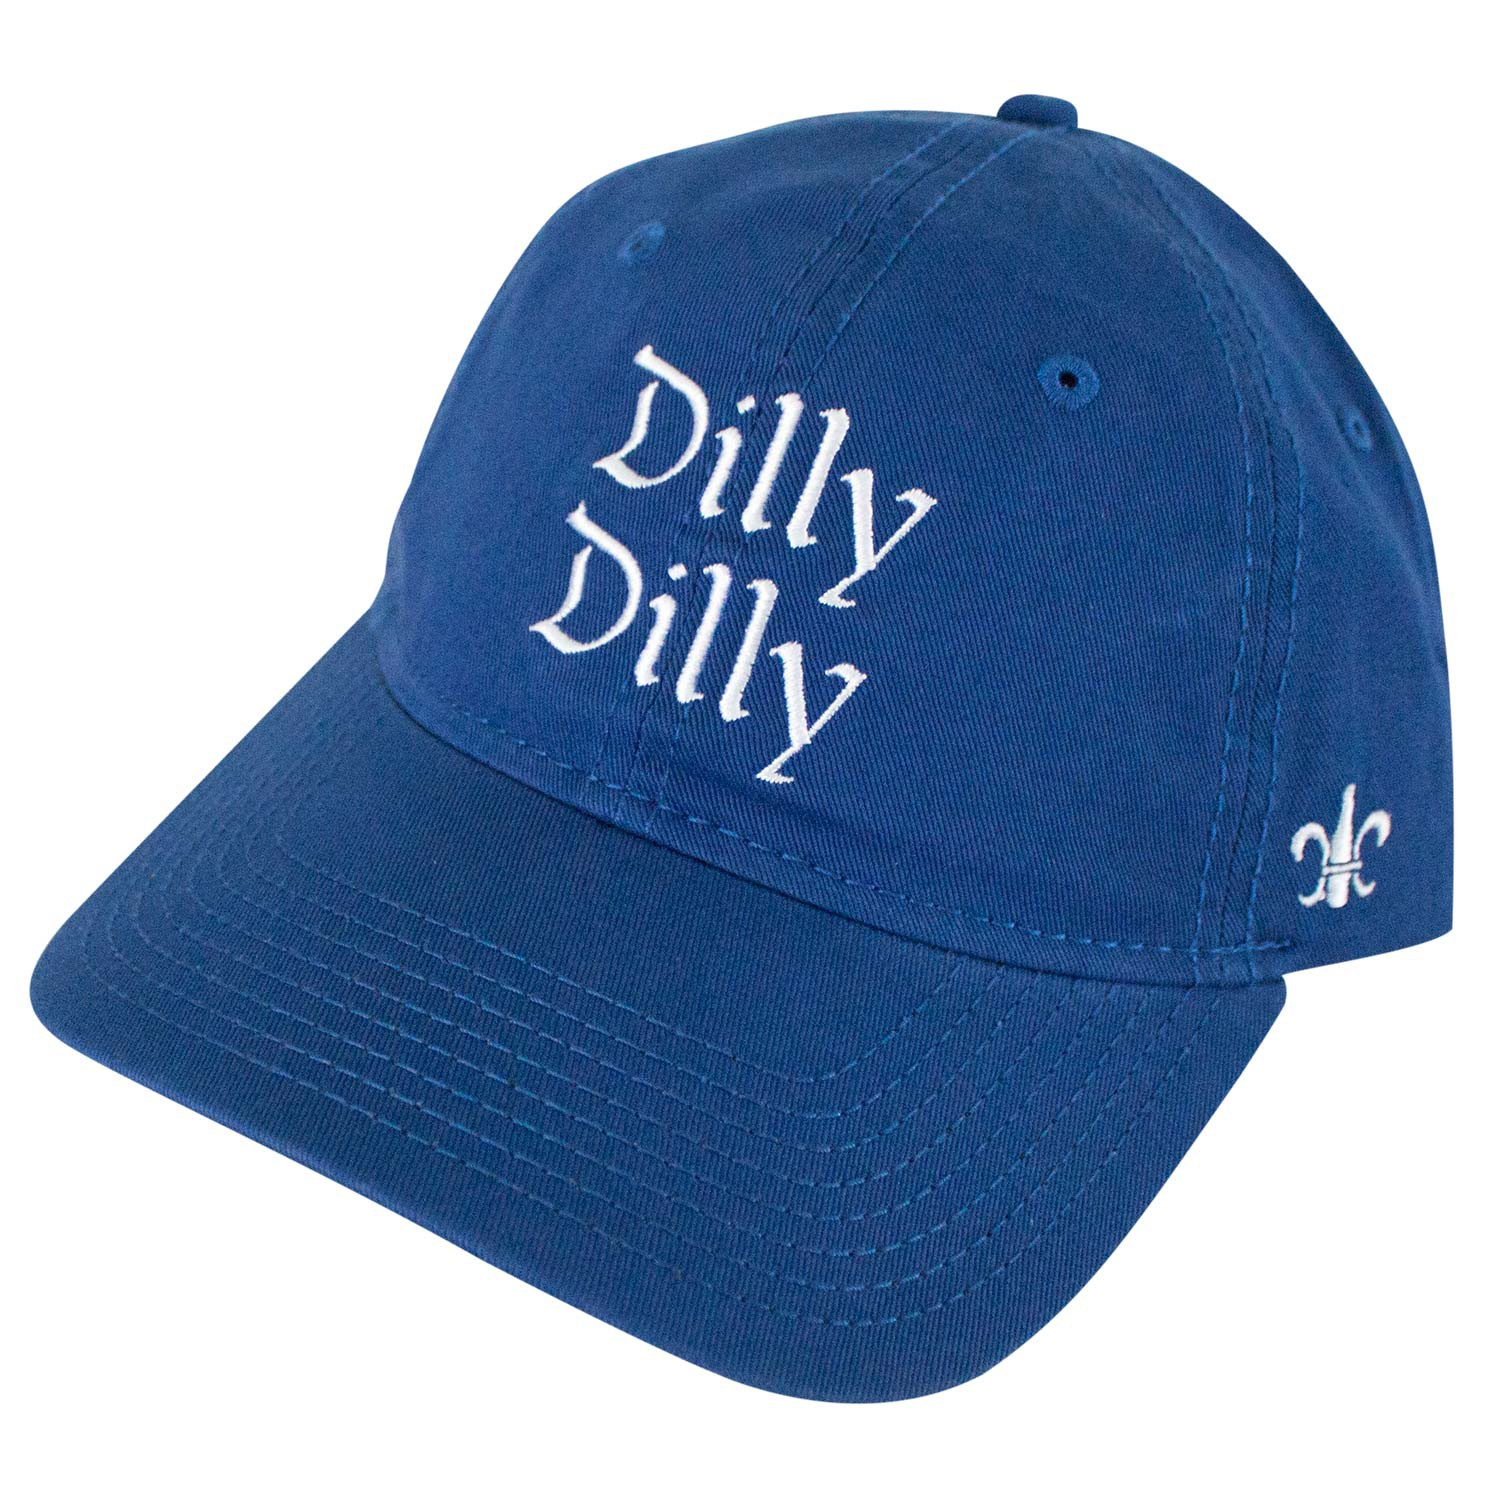 Bud Light Dilly Dilly Dad Hat